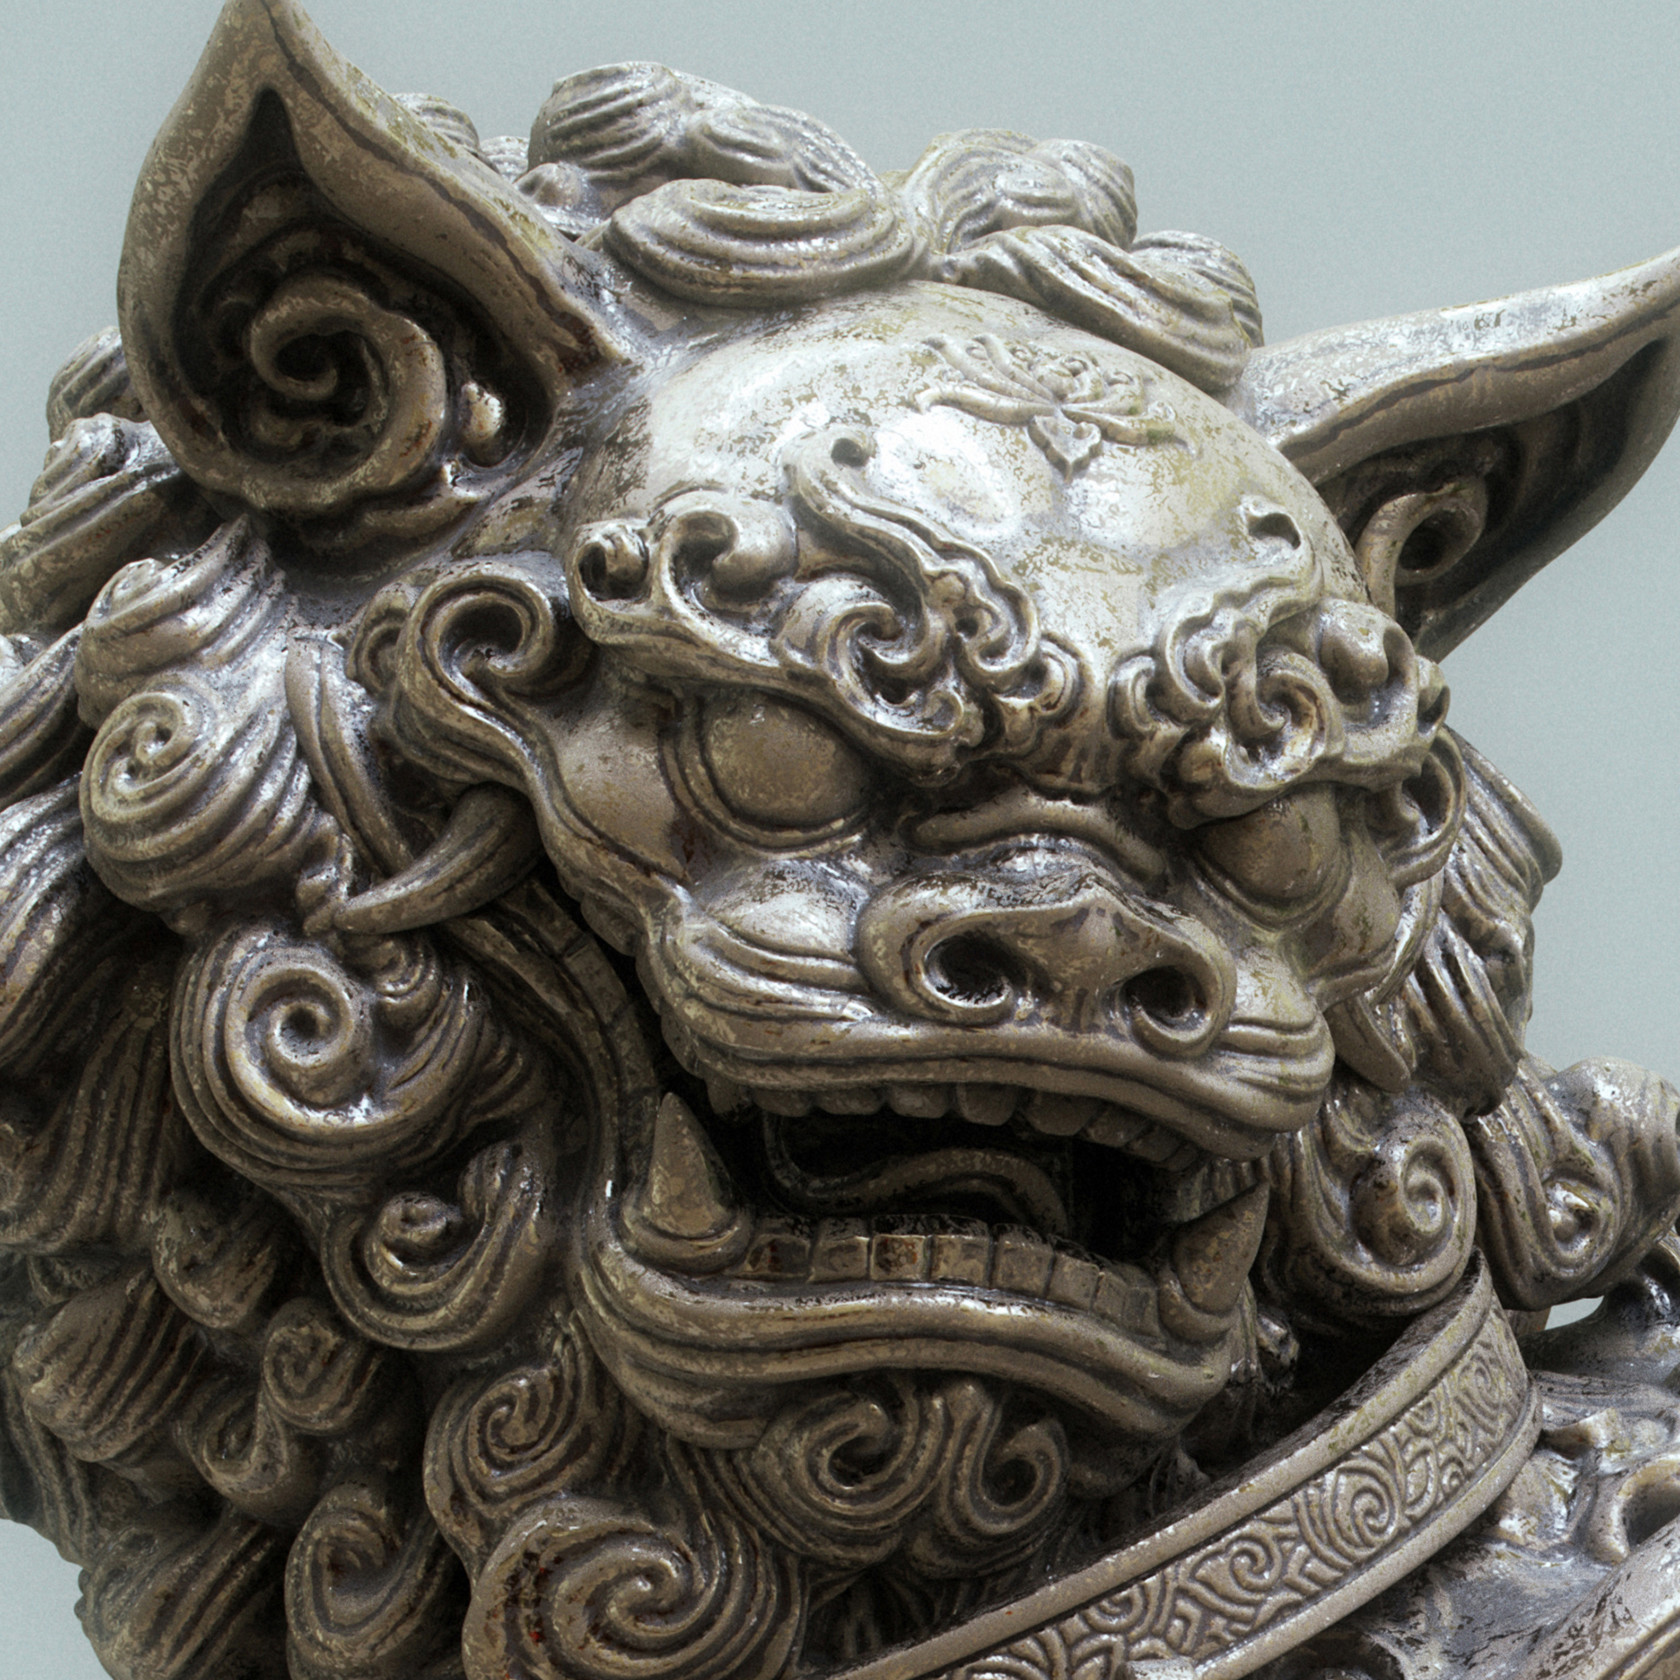 Zhelong xu lion1 detail1